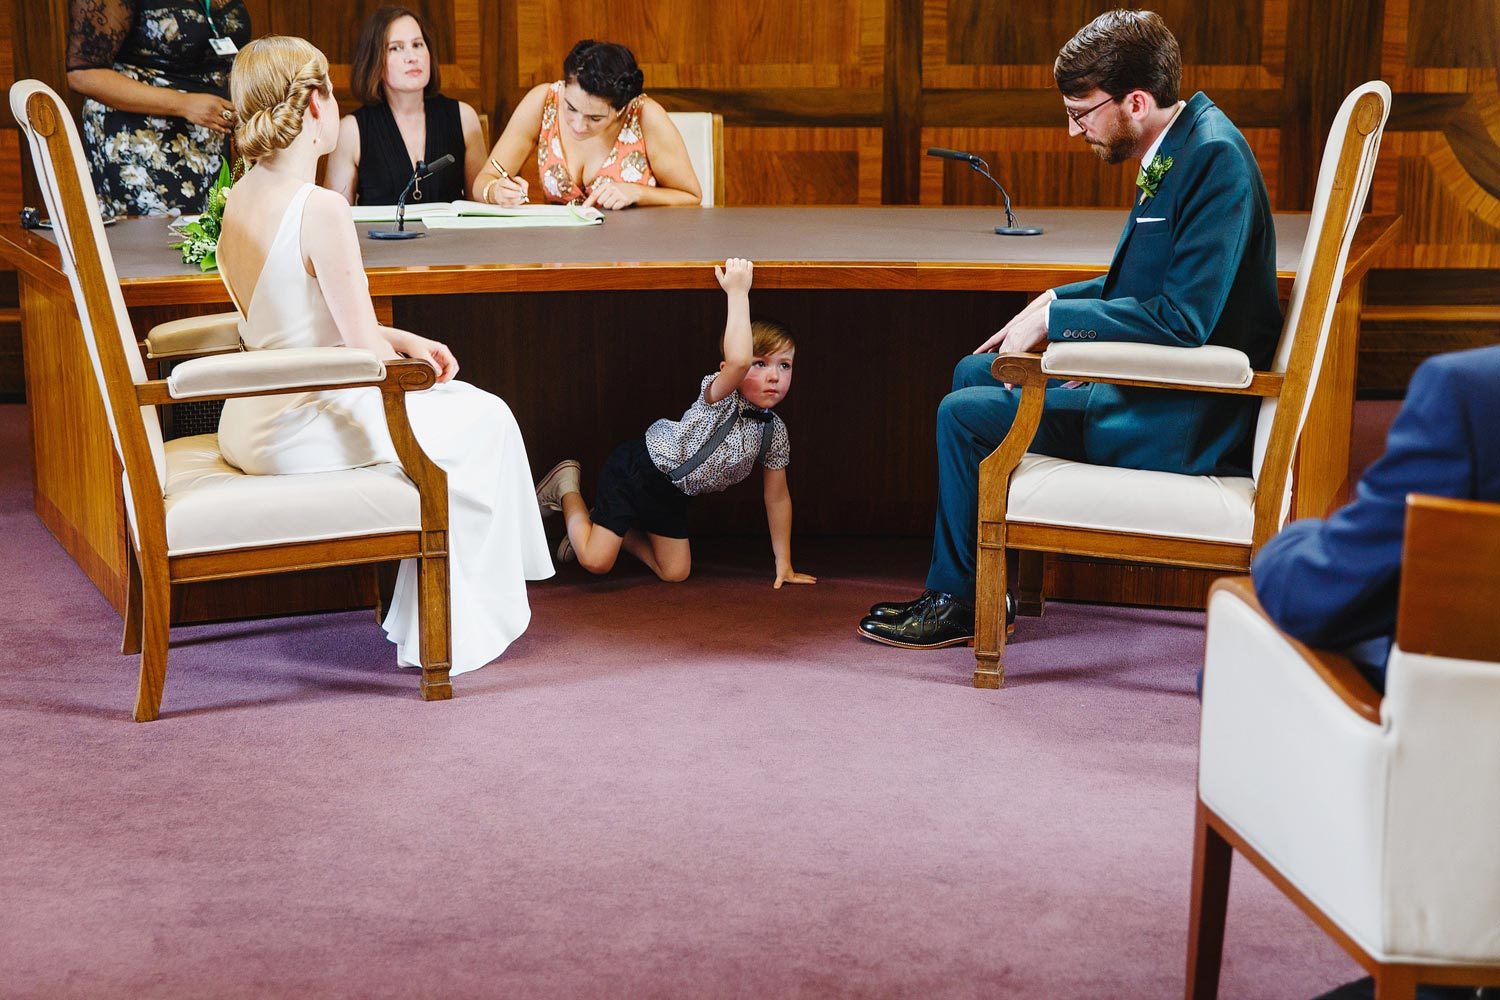 London wedding photographer - a child hides under the table at the Stoke Newington Town Hall